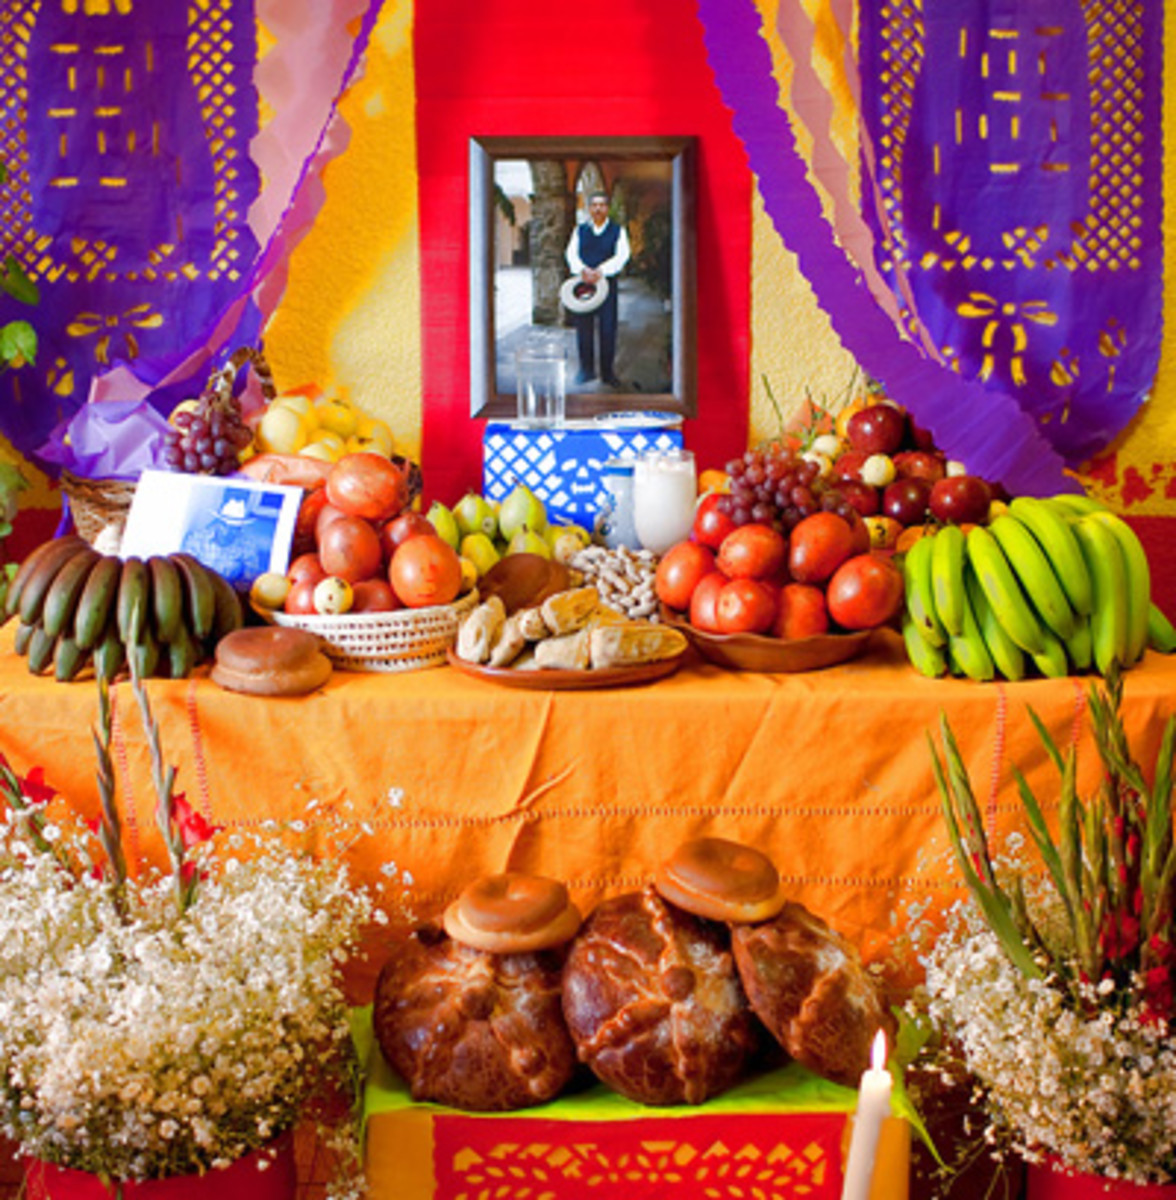 Day of the Dead altars are elaborate creations designed to encourage a friendly visit from the deceased soul of a loved one.